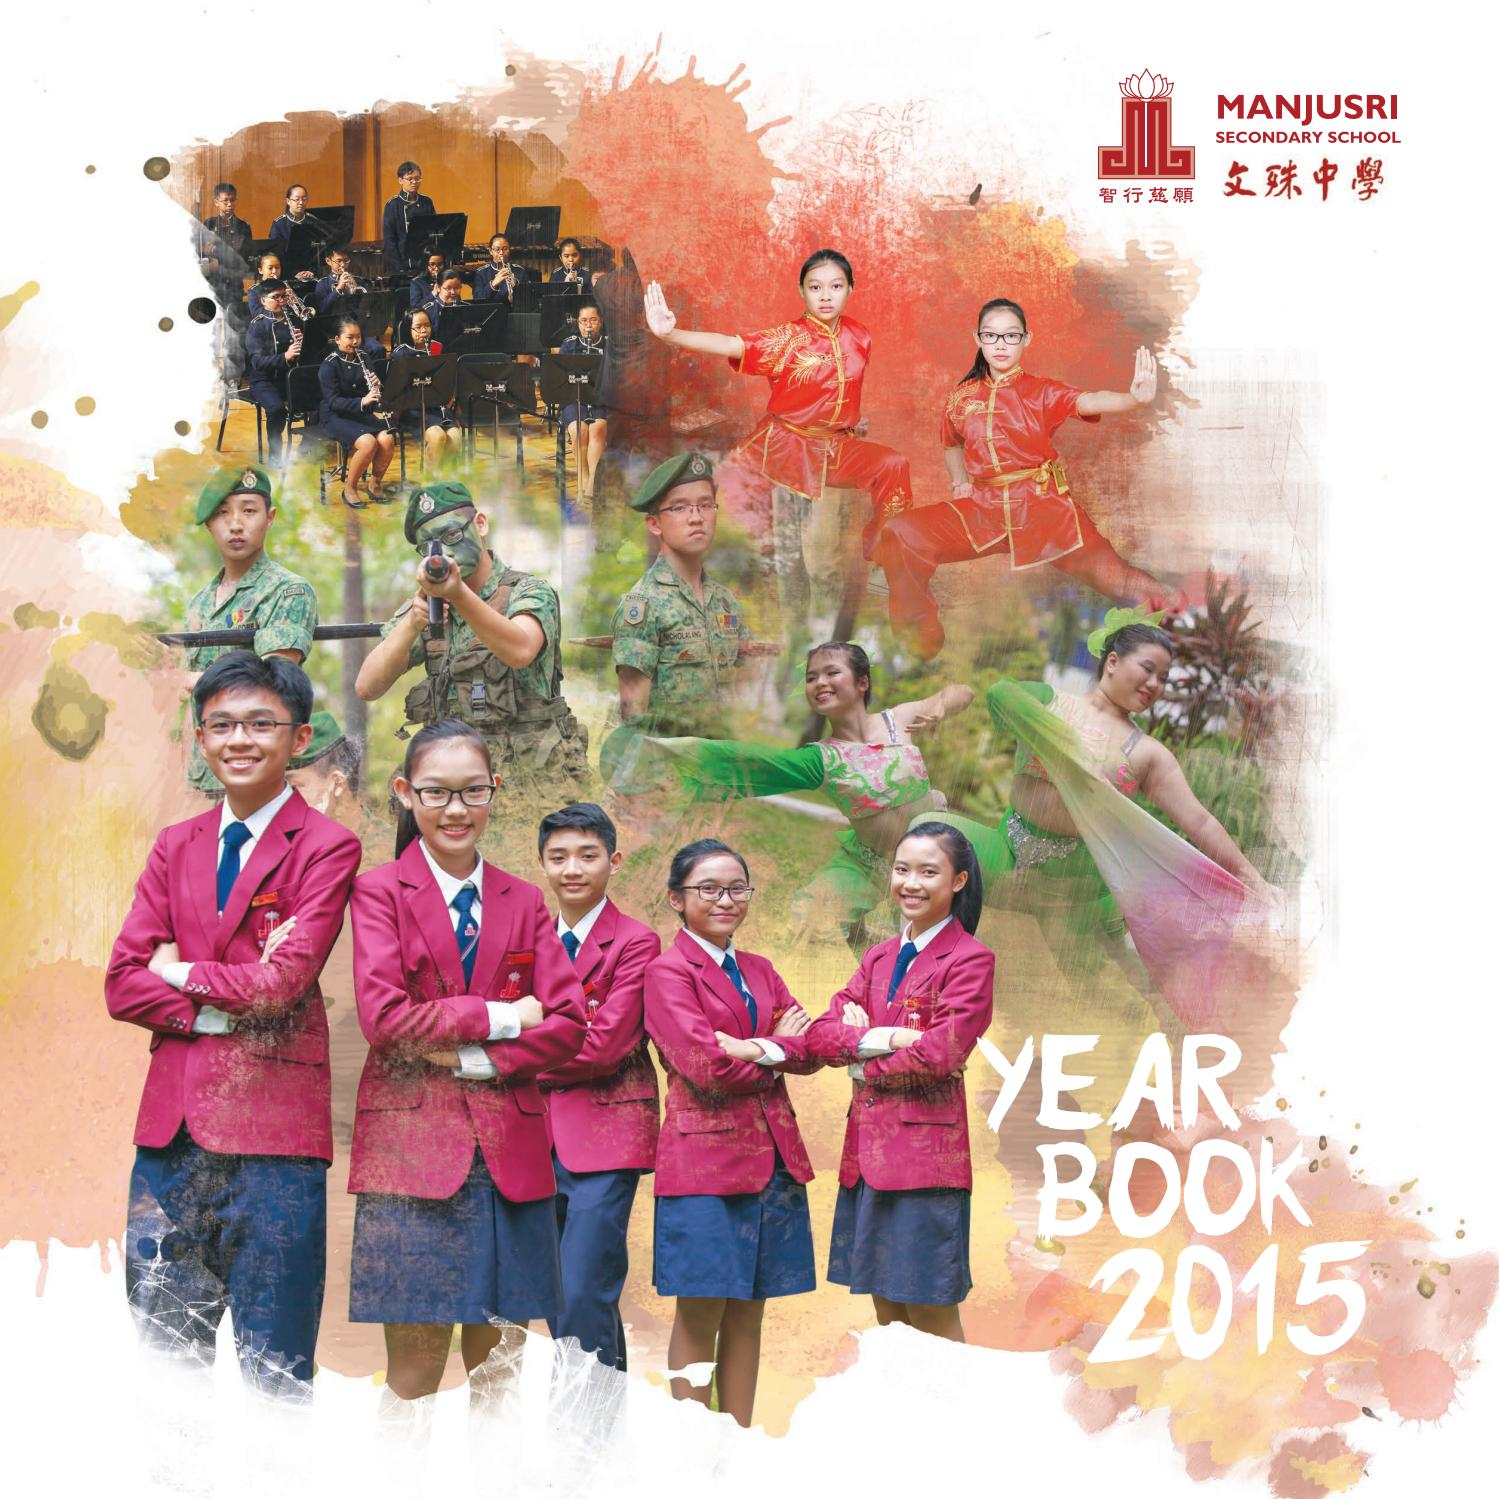 Manjusri Secondary School Yearbook 2015 by Phoenix Design